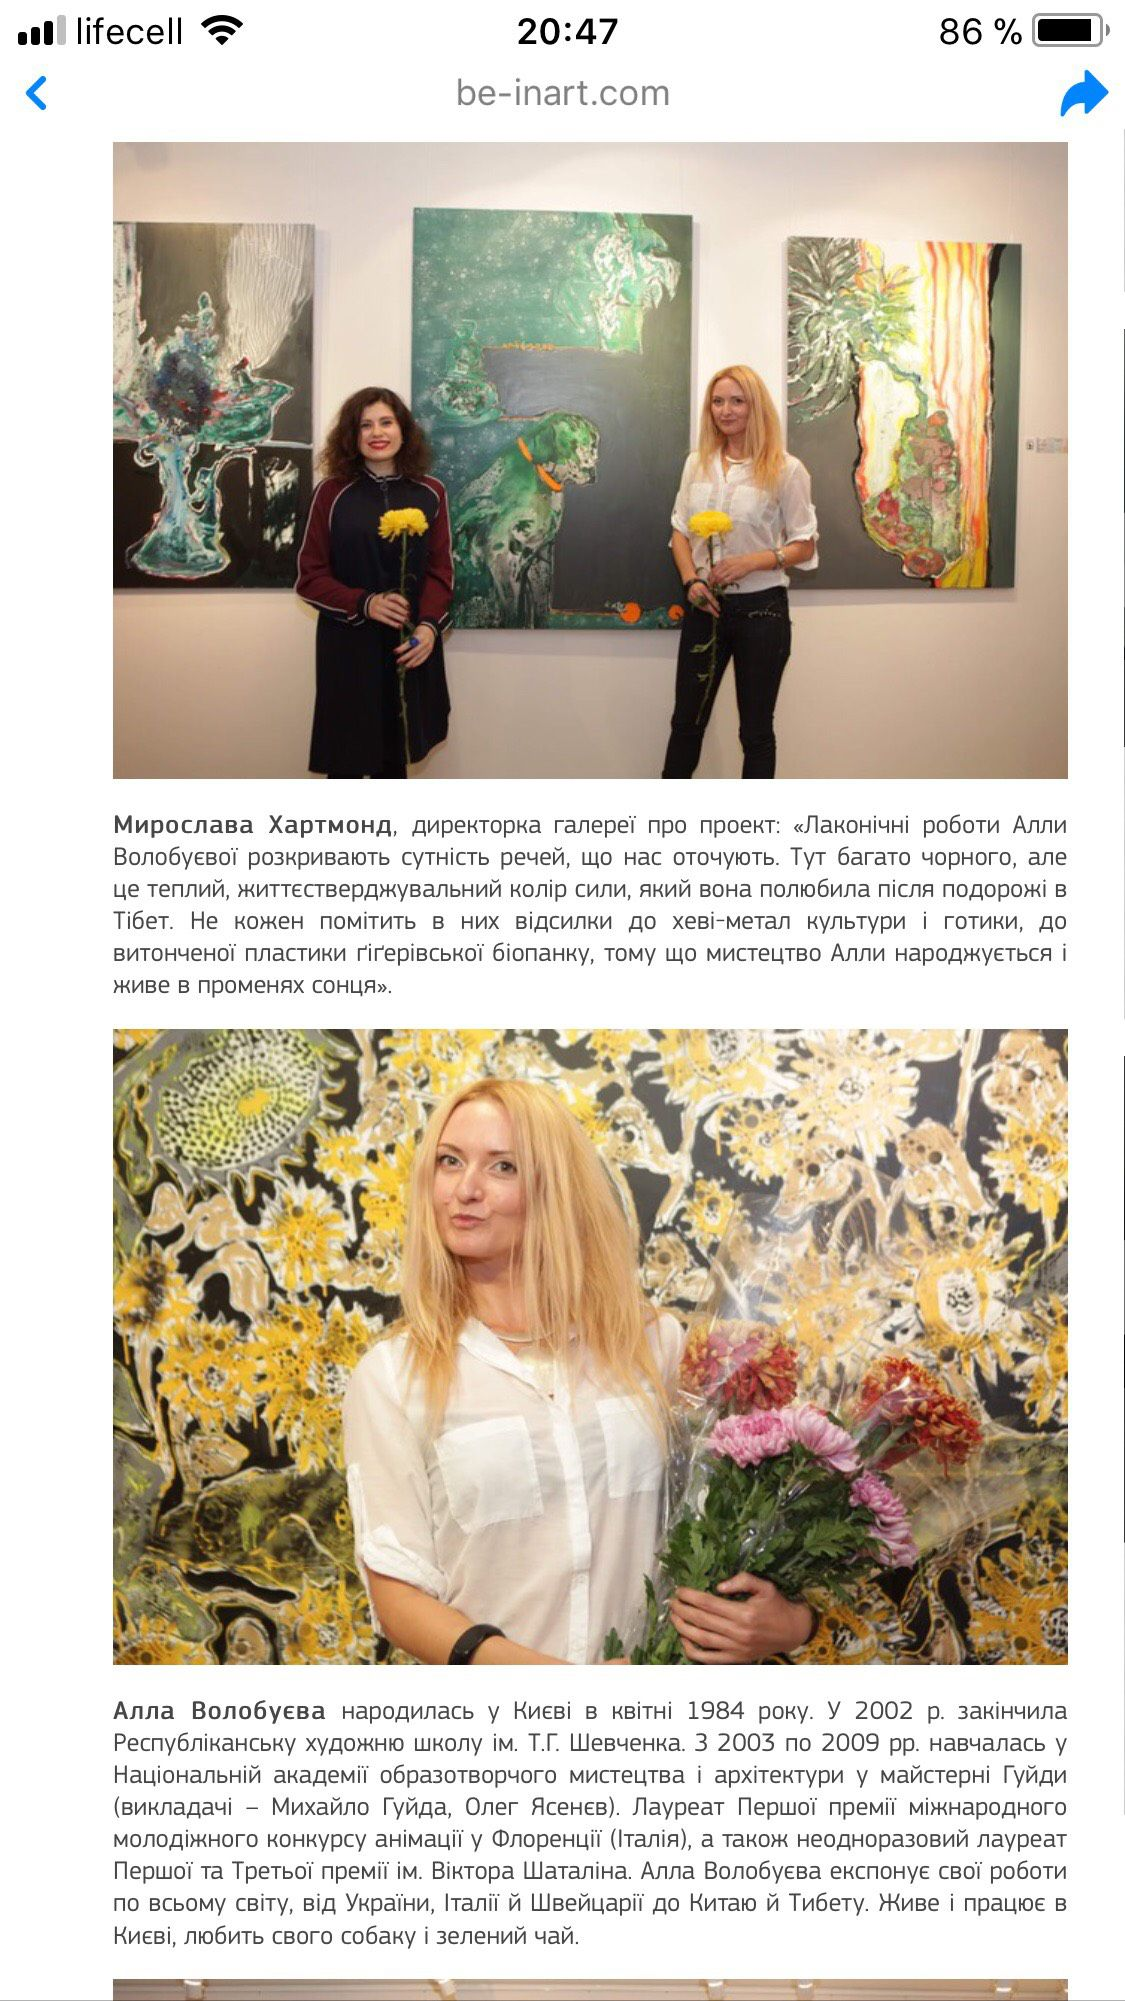 news about exhibitions